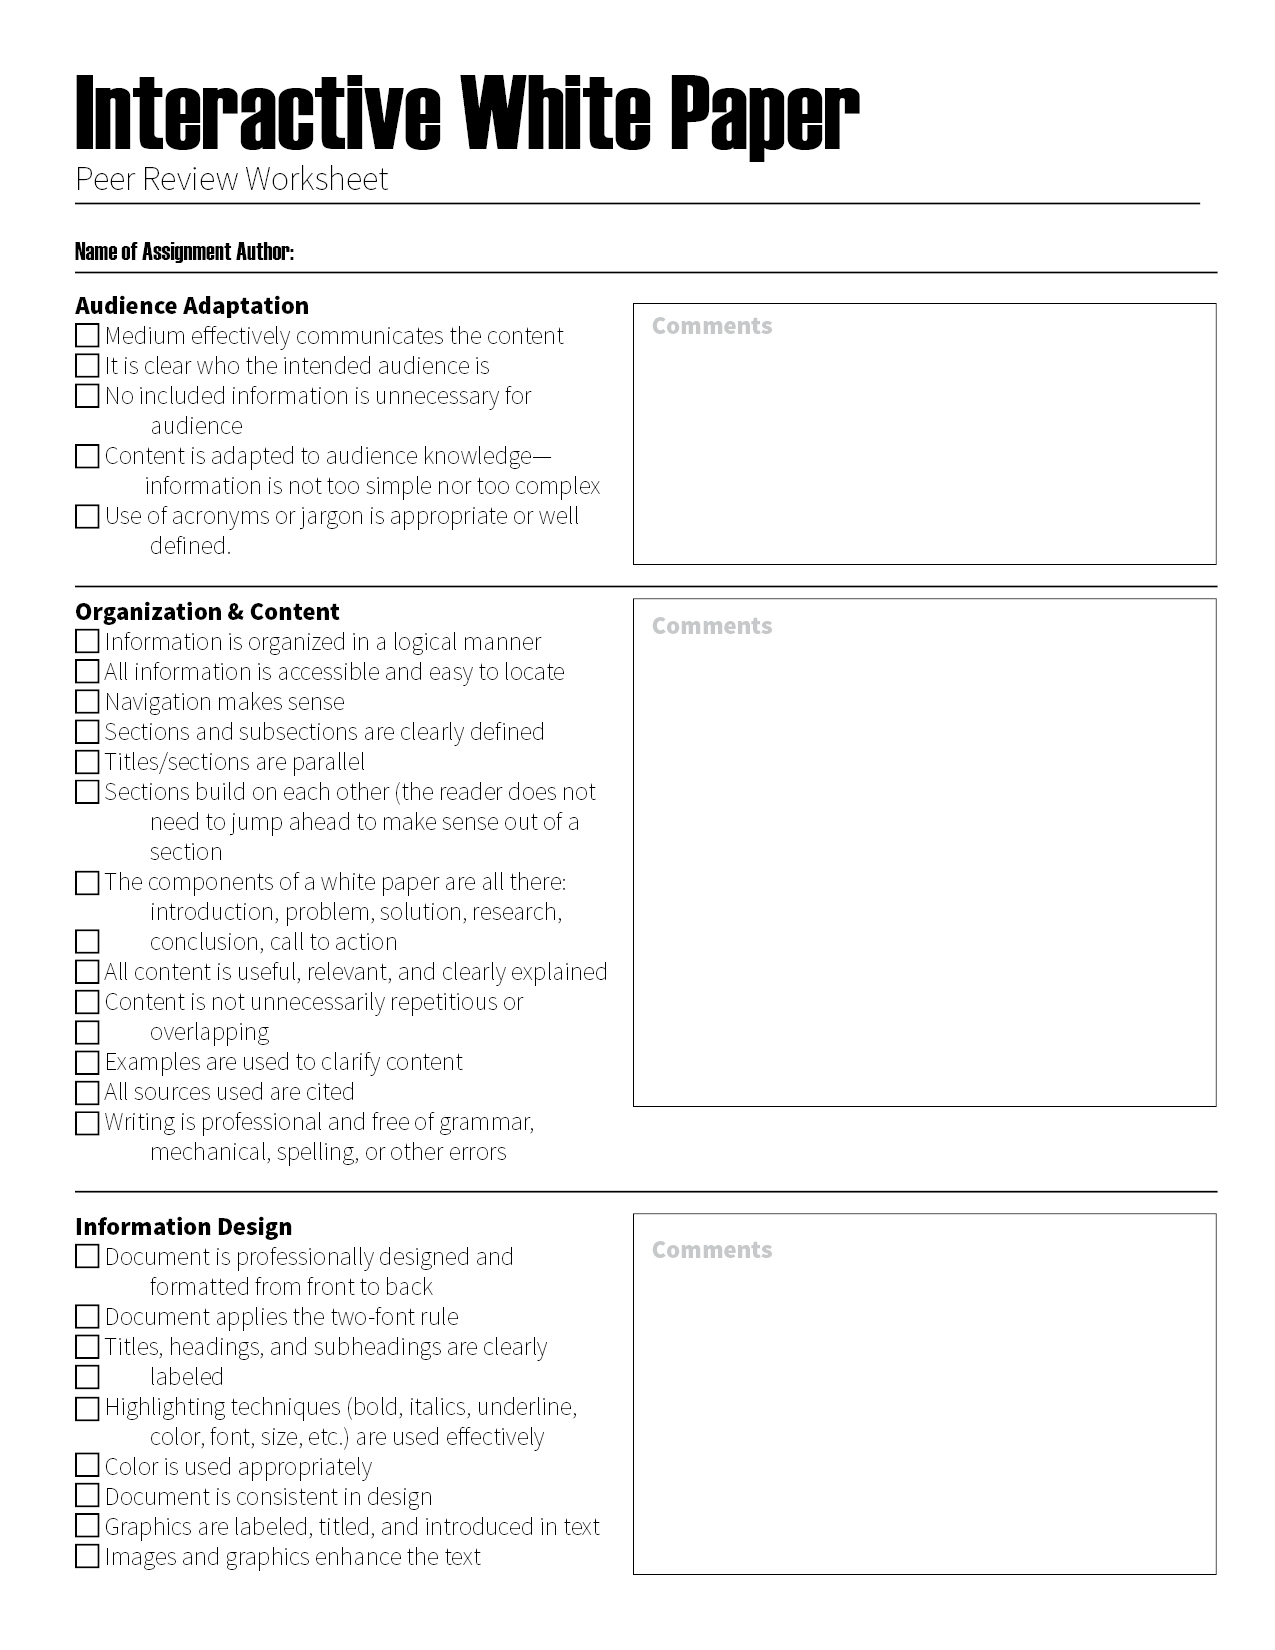 Essay editing checklist teachers college